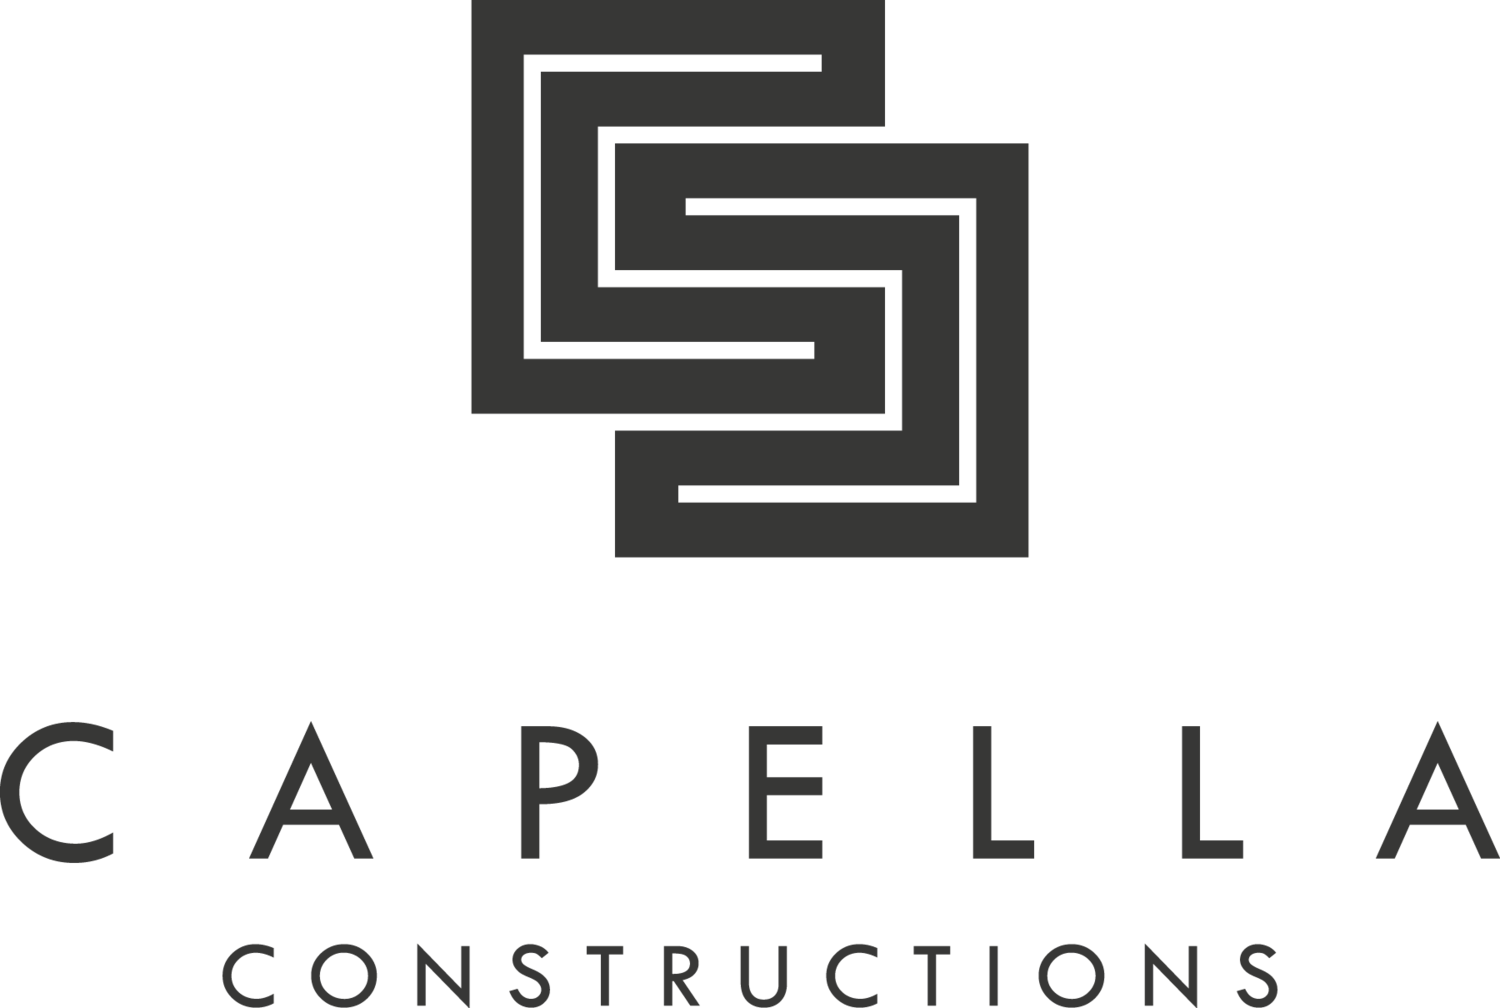 Capella Constructions